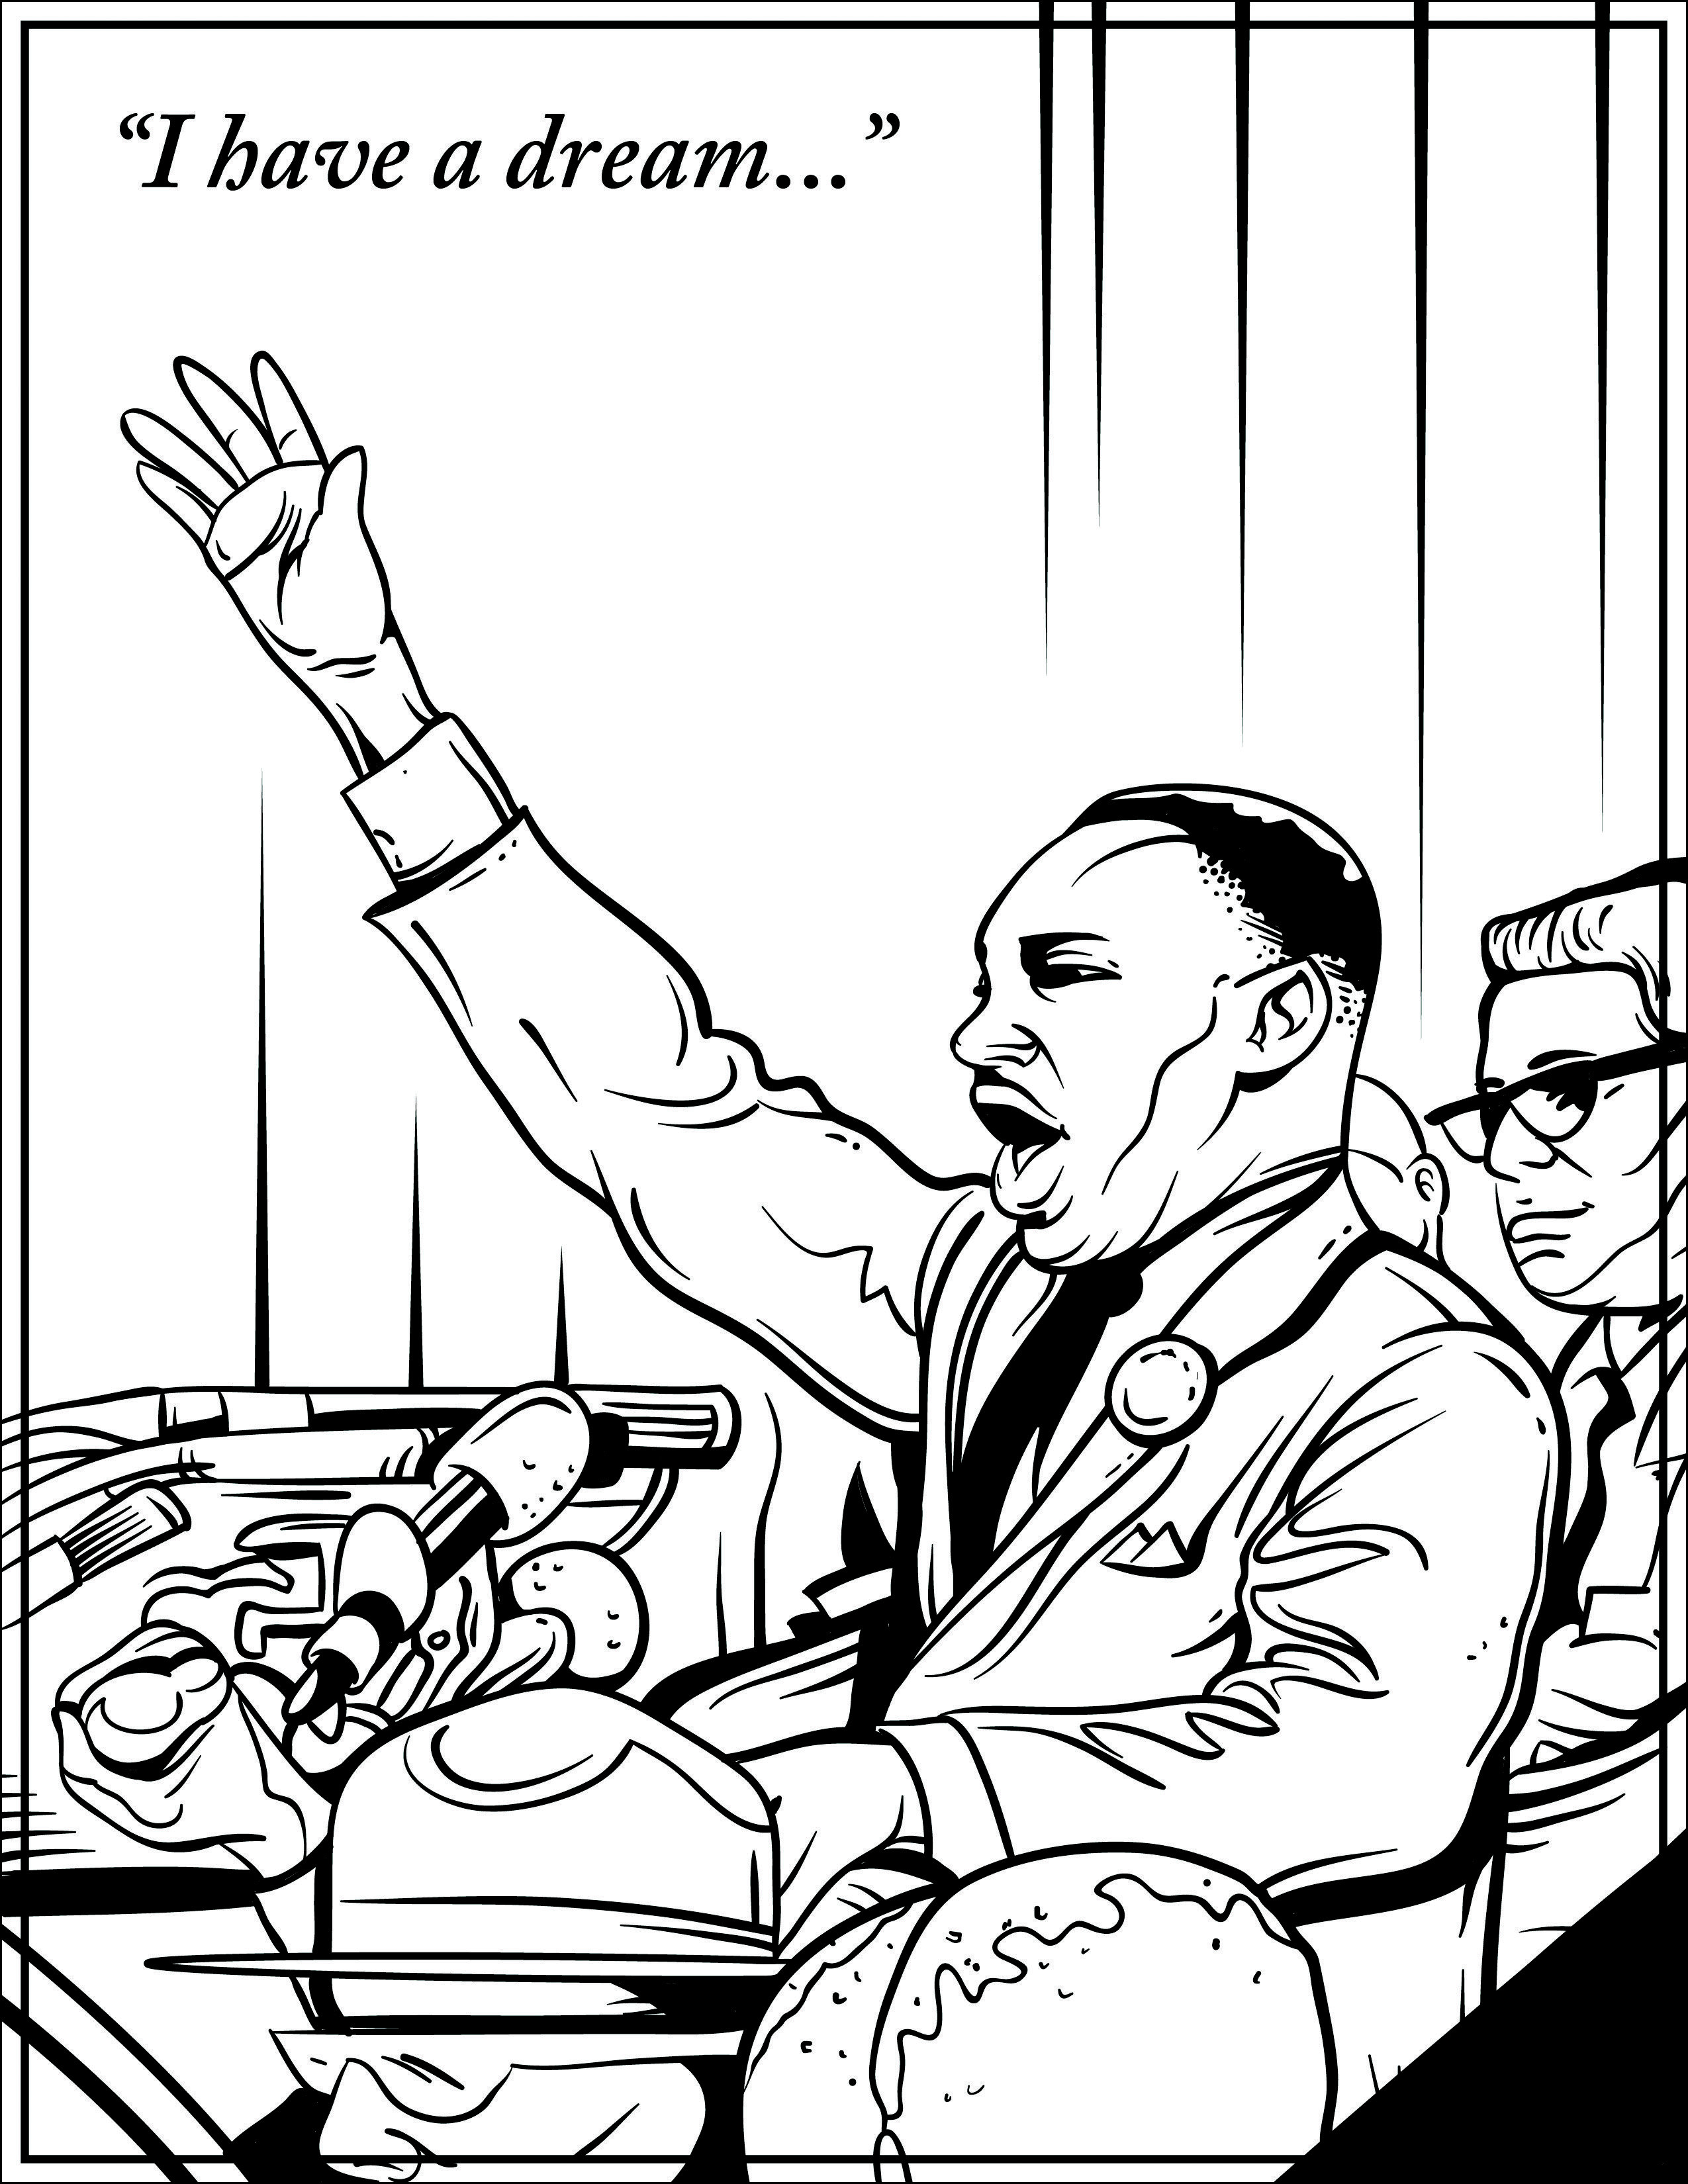 A Great Martin Luther King Jr Day Activity For Students